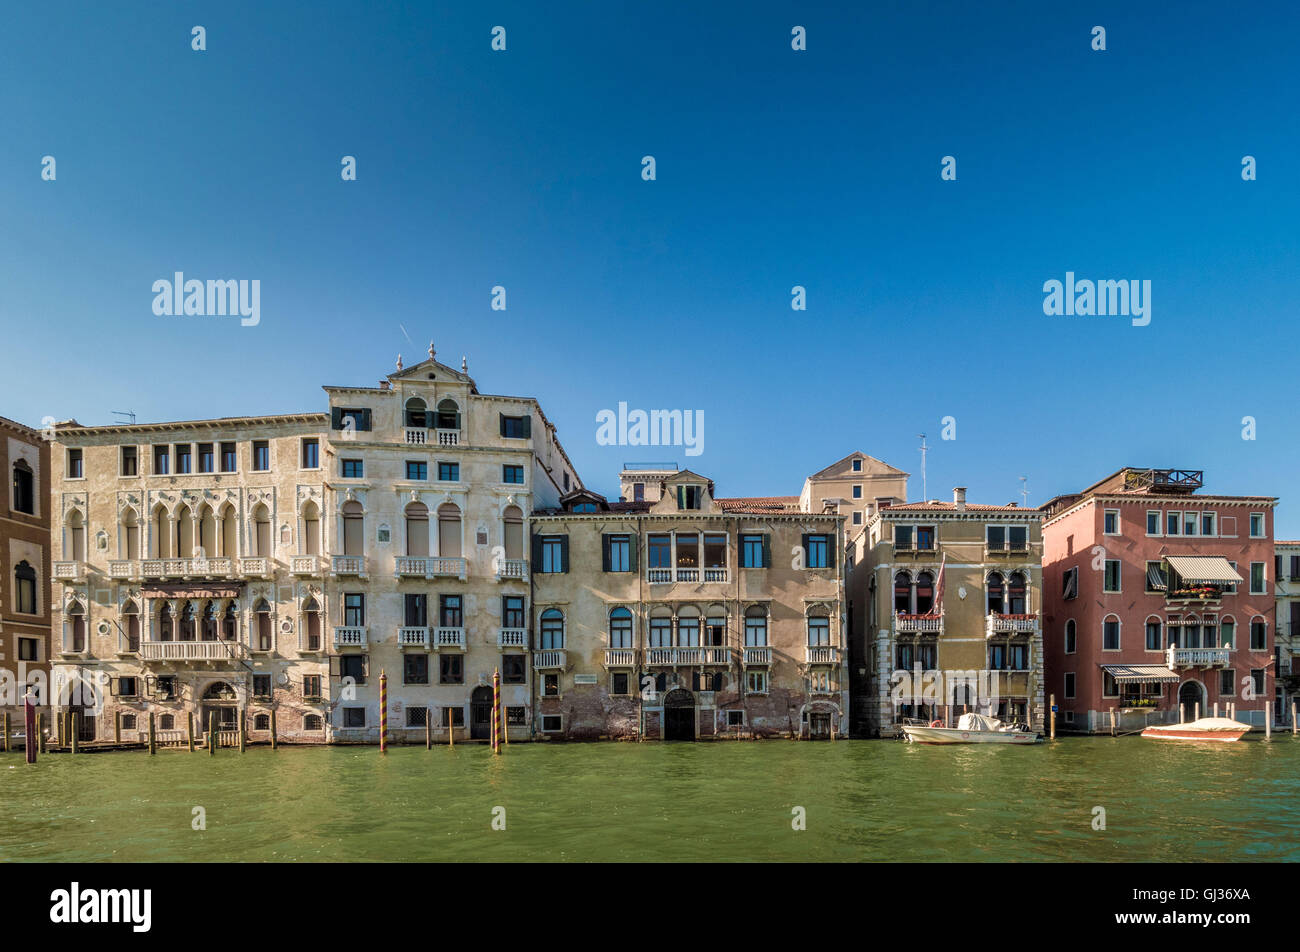 Traditional venetian buildings along the Grand Canale. Venice, Italy. - Stock Image